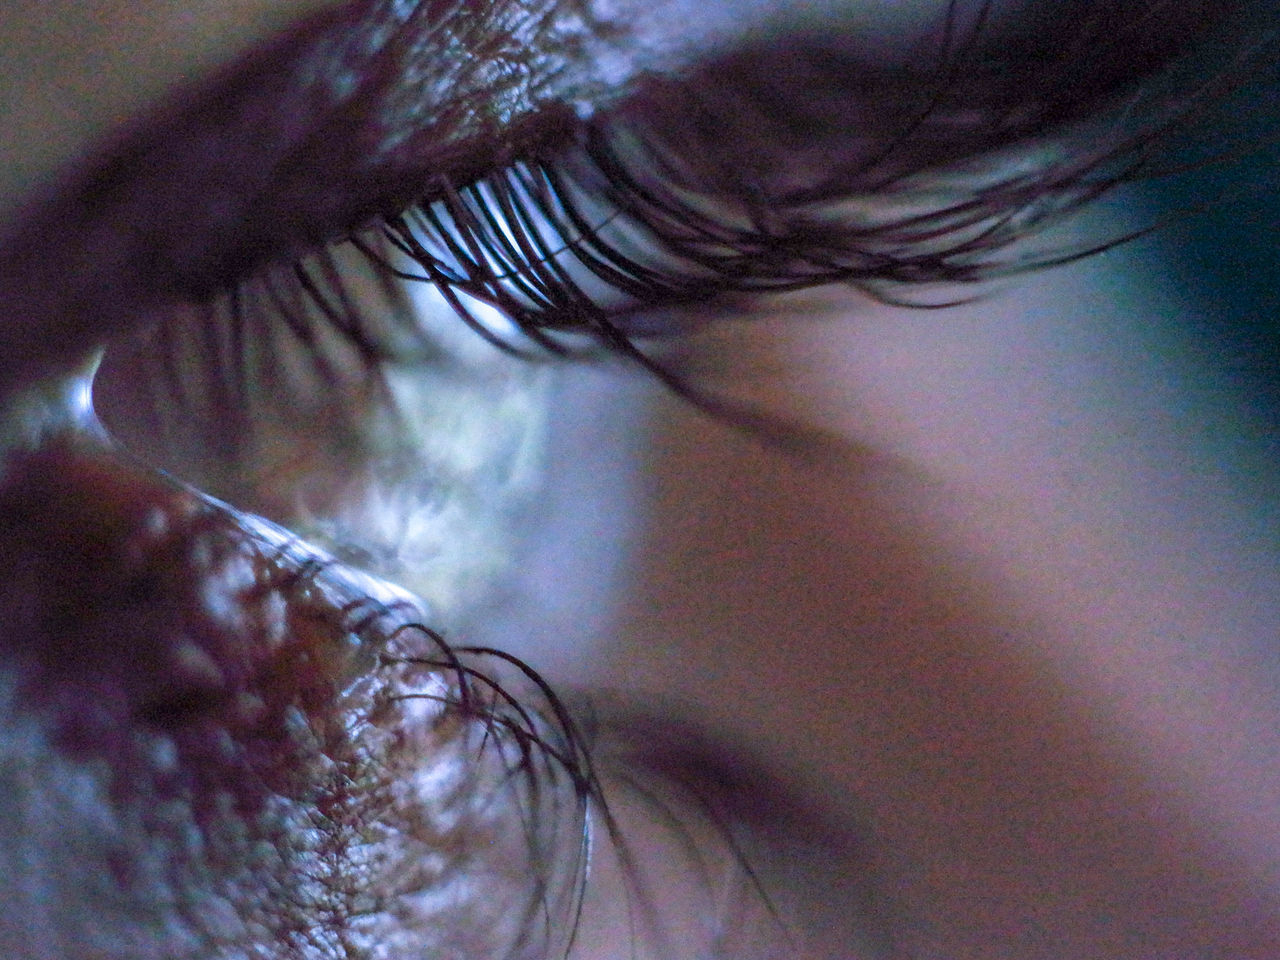 EXTREME CLOSE-UP OF WOMAN EYE WITH HAIR